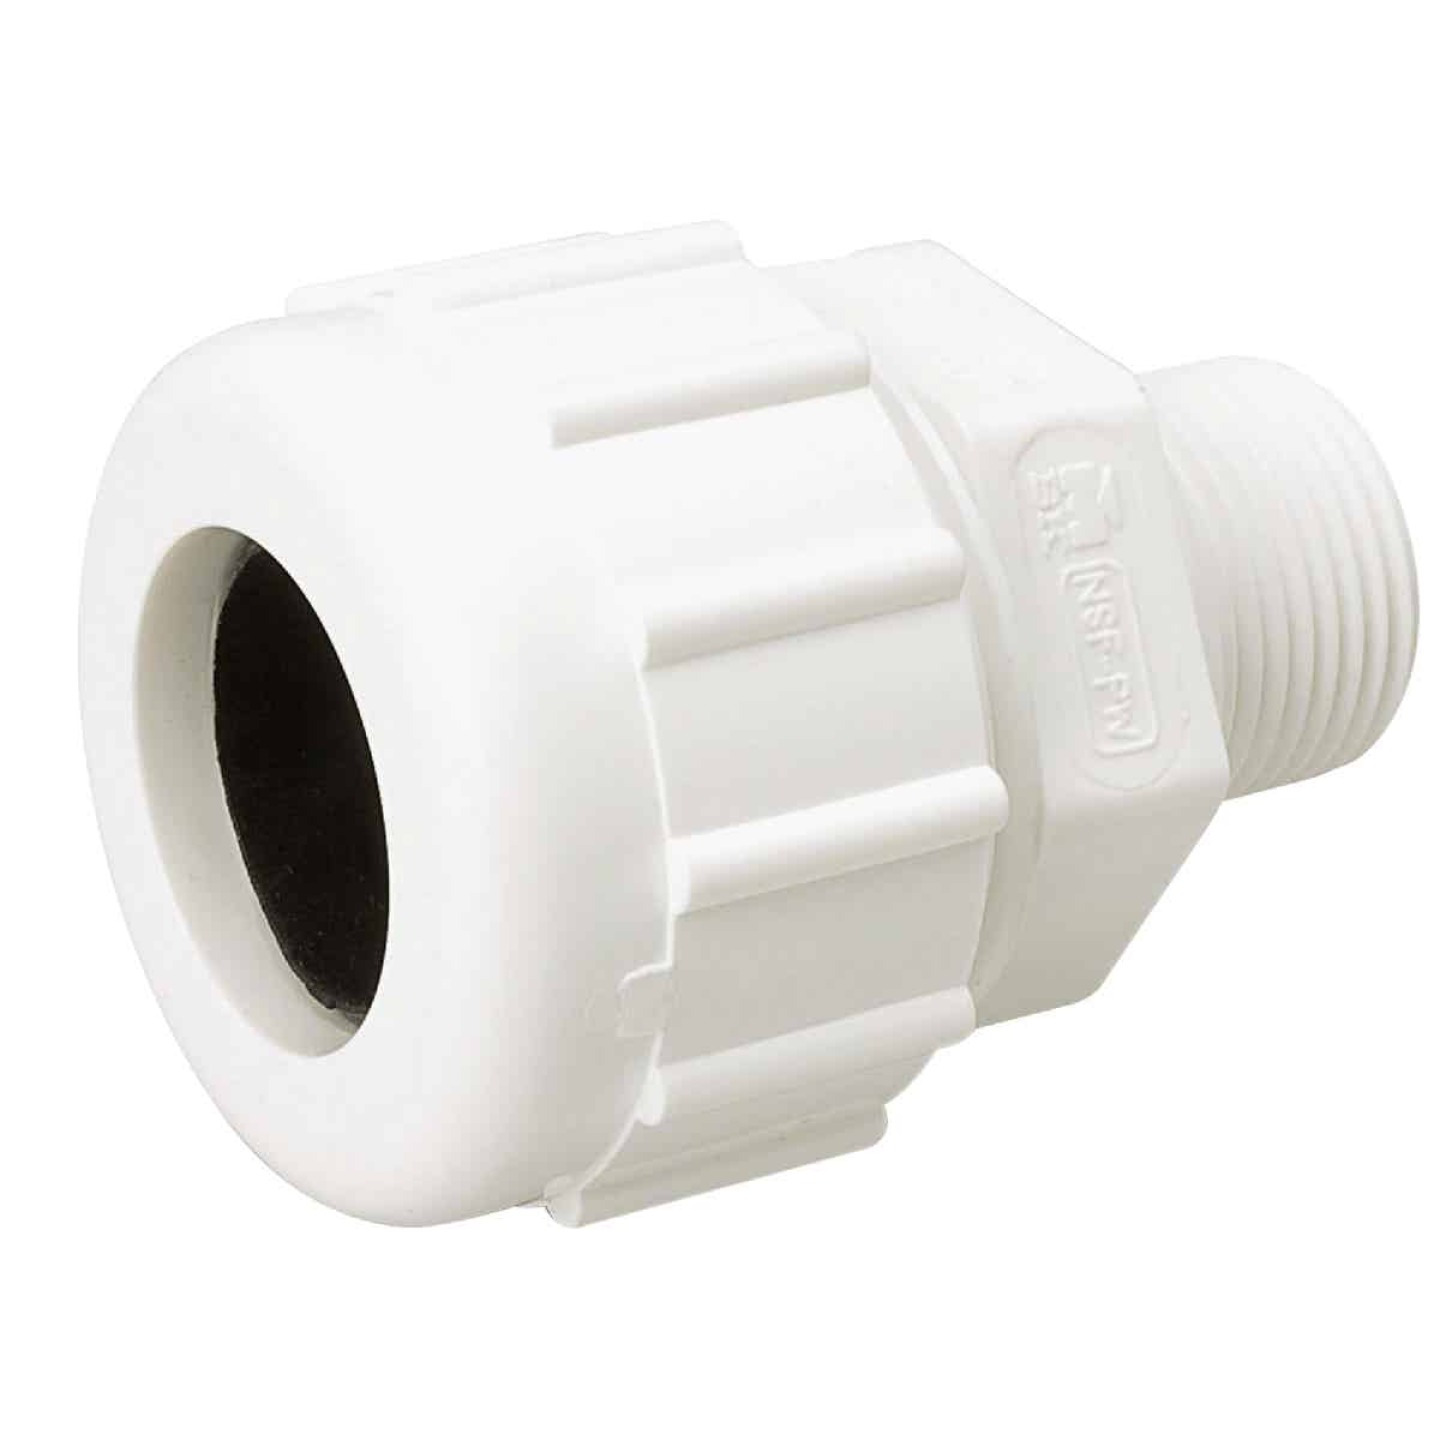 B&K 1-1/4 In. MIPT Schedule 40 Compression Union PVC Adapter Image 1